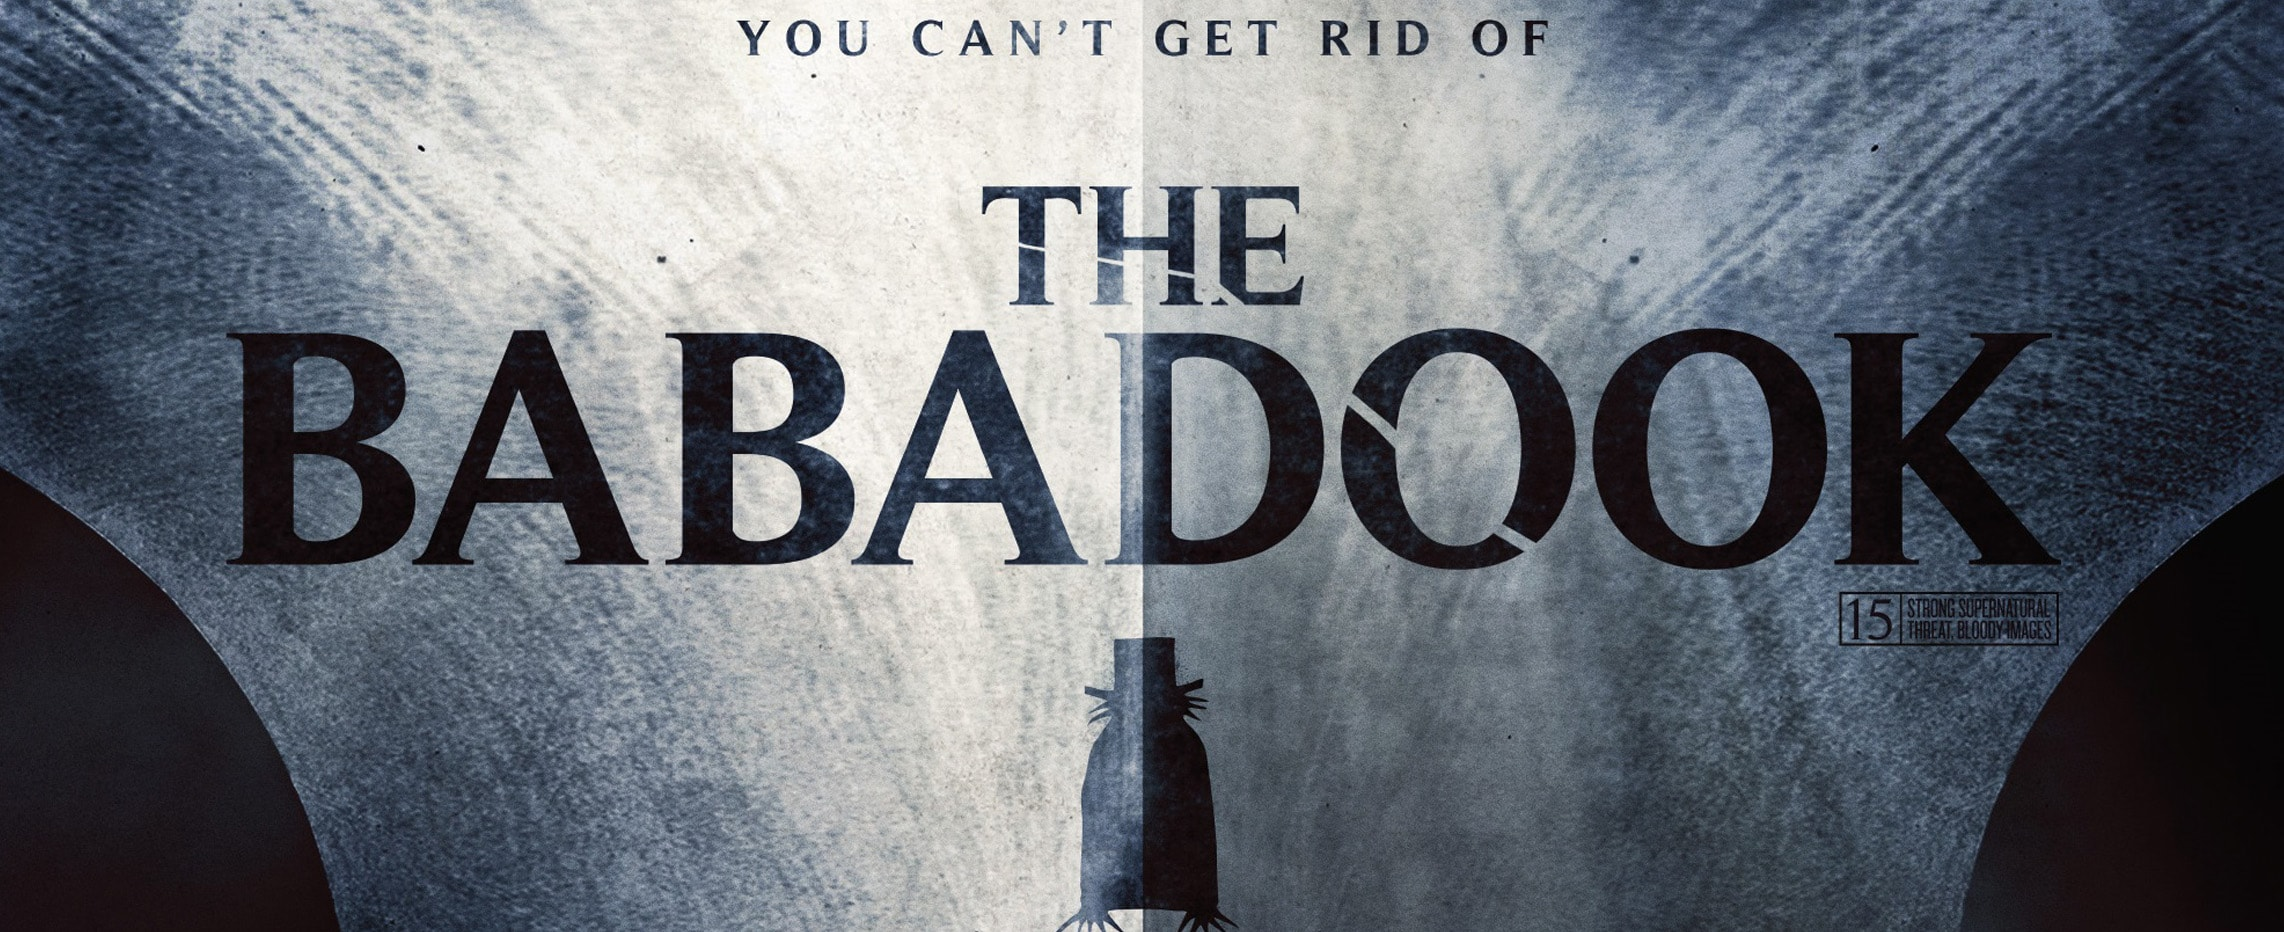 The Babadook HD